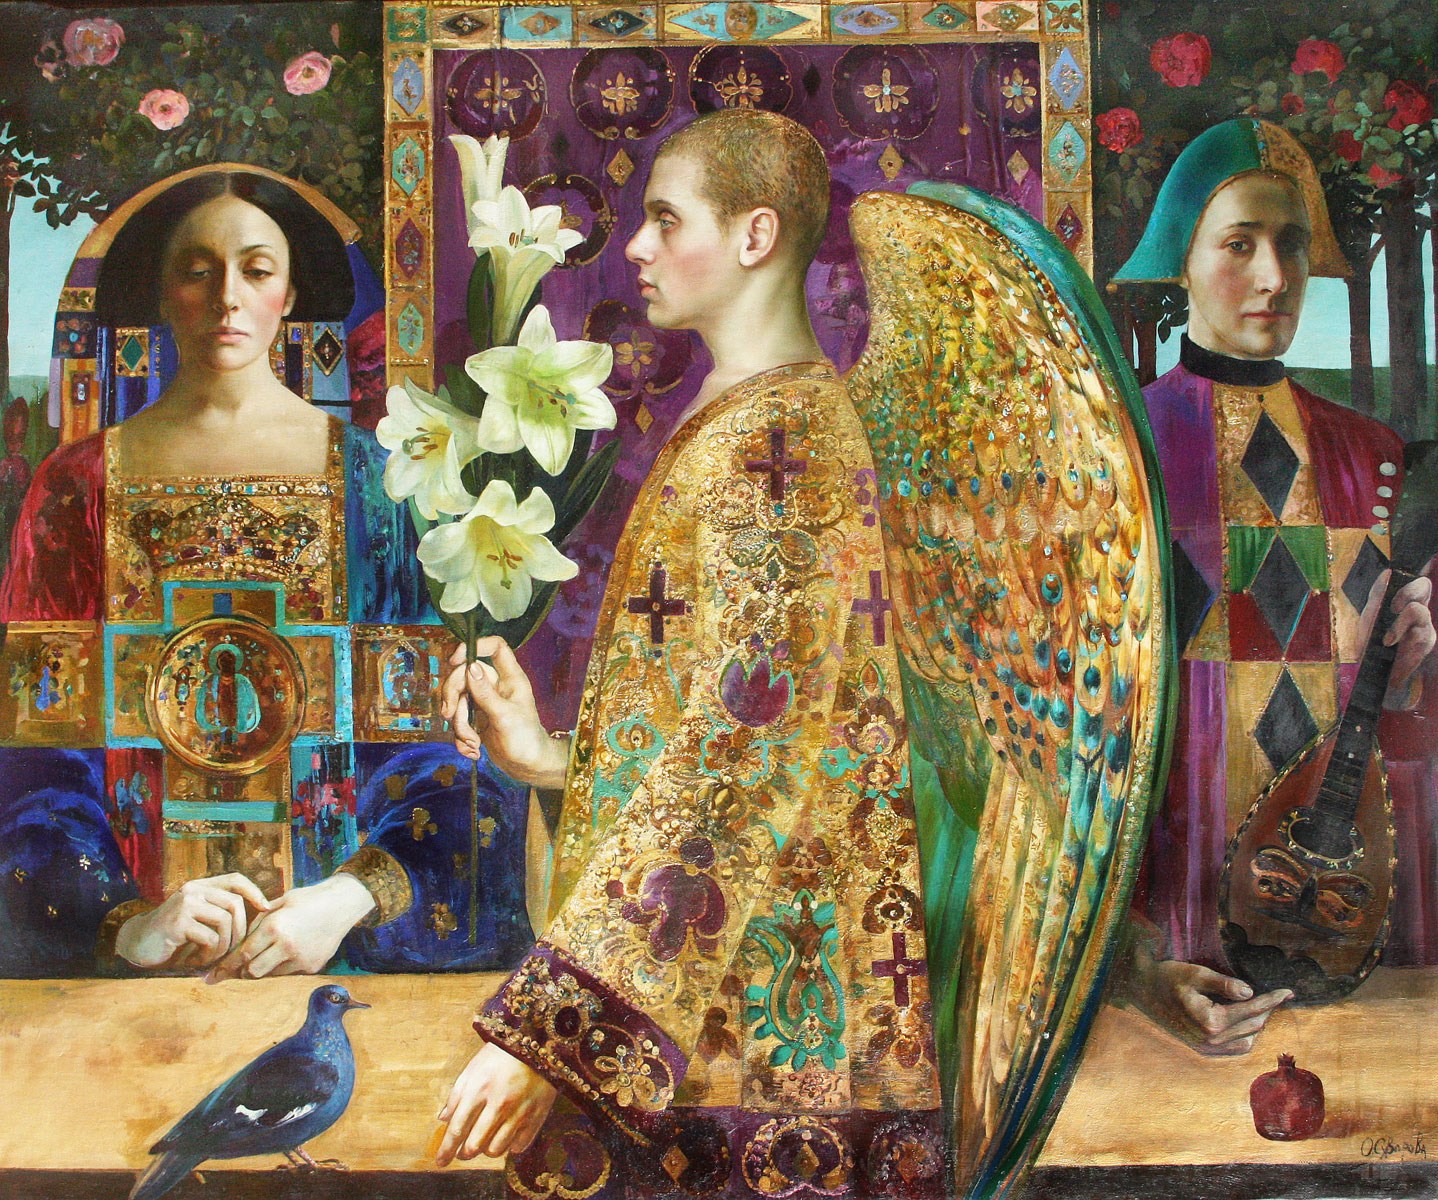 Golden-Annunciation-Olga-Suvorova-109x132-cm,-oil-on-canvas